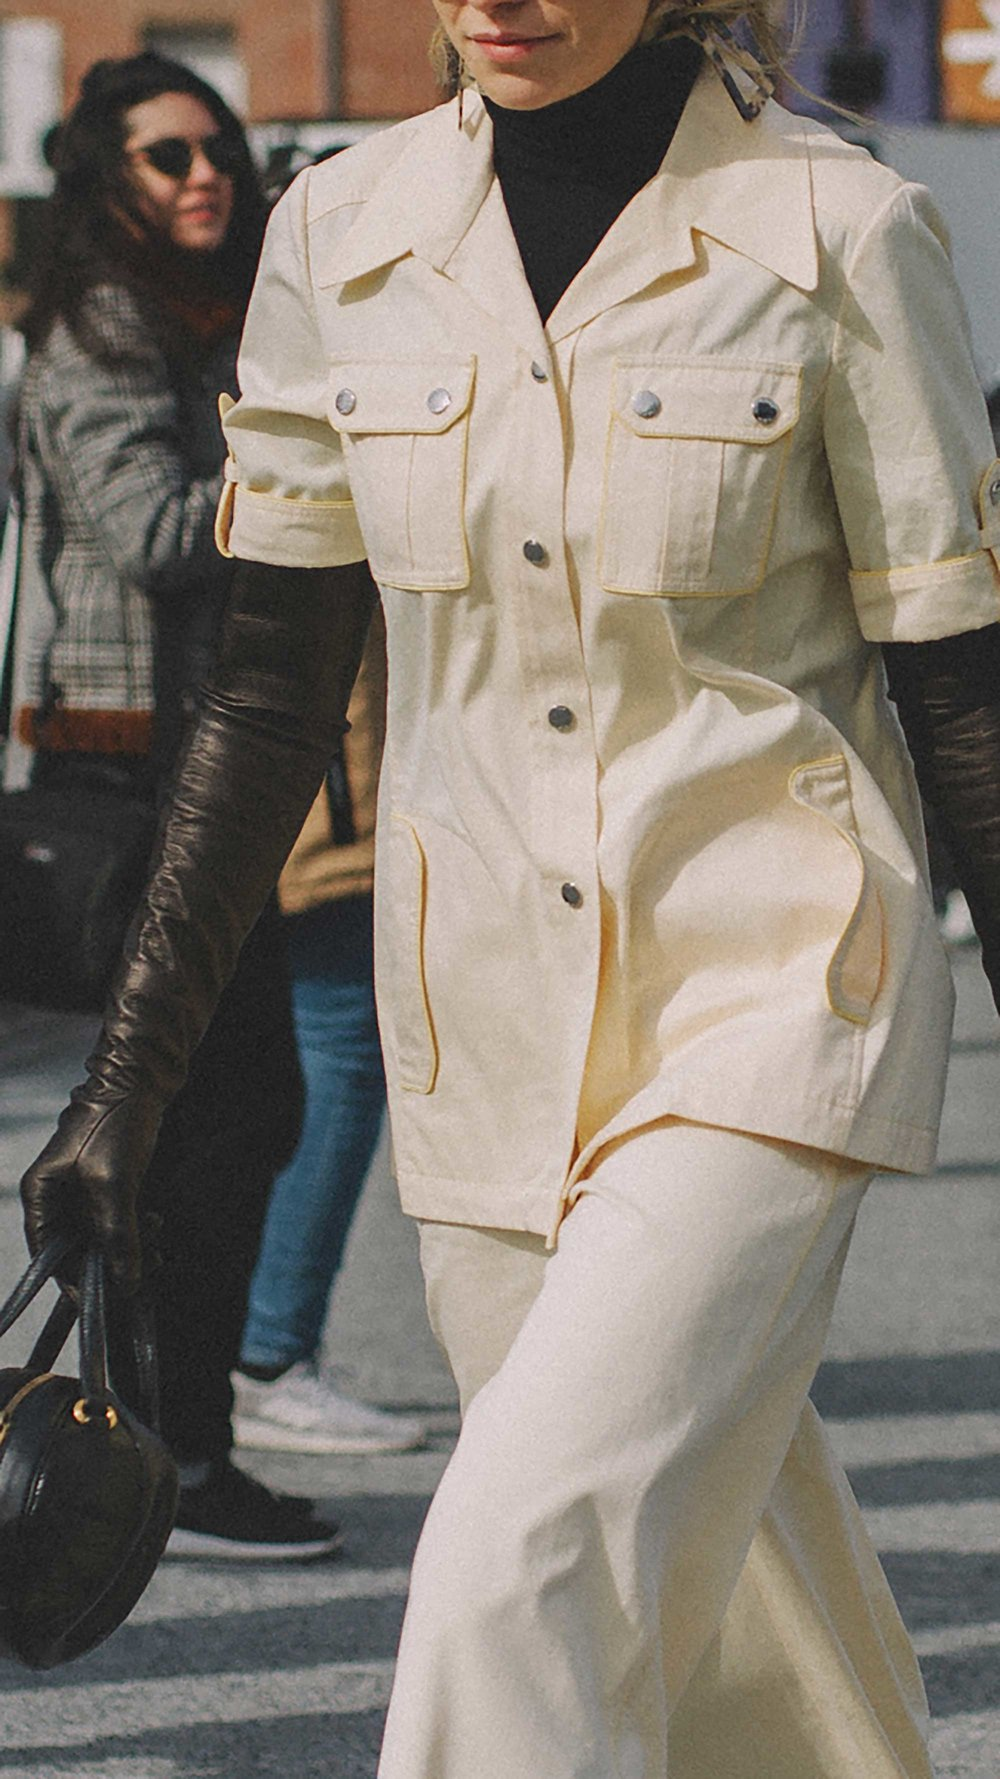 20 irresistible pastel outfit ideas for winter from New York Fashion Week street style10.jpg